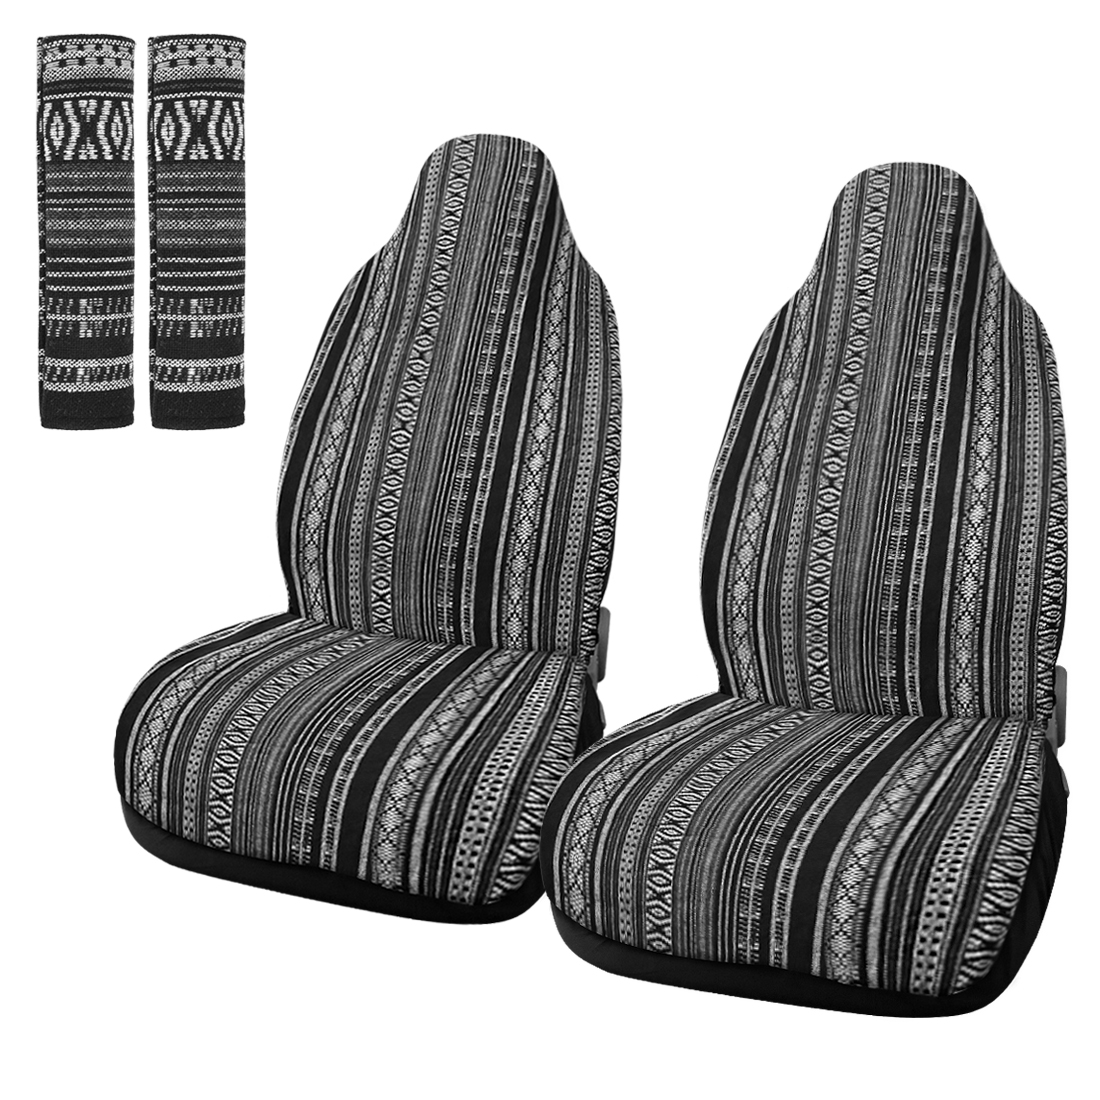 Universal Front Seat Cover Saddle Blanket Seat-Belt Pad Protectors for Car 2pcs